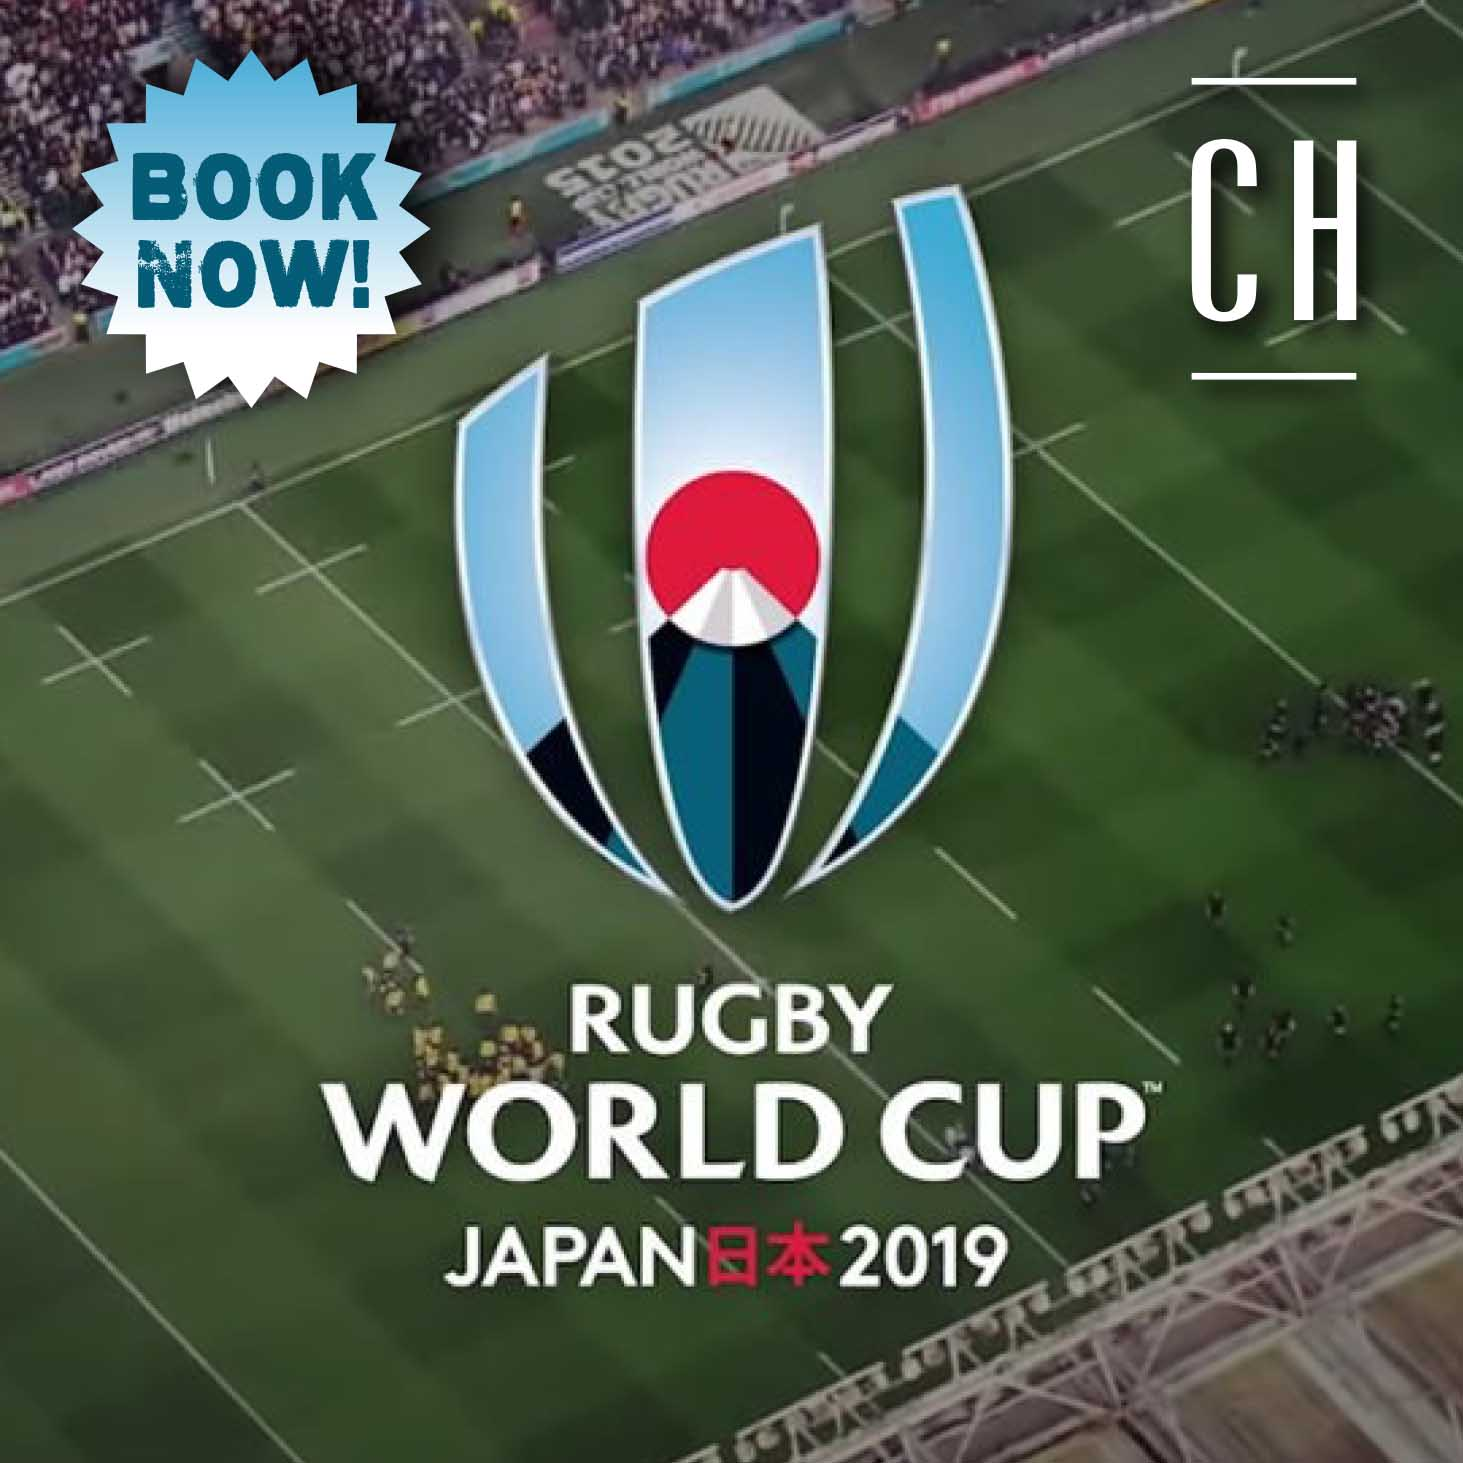 Rugby World Cup Live and Loud at the Cloey